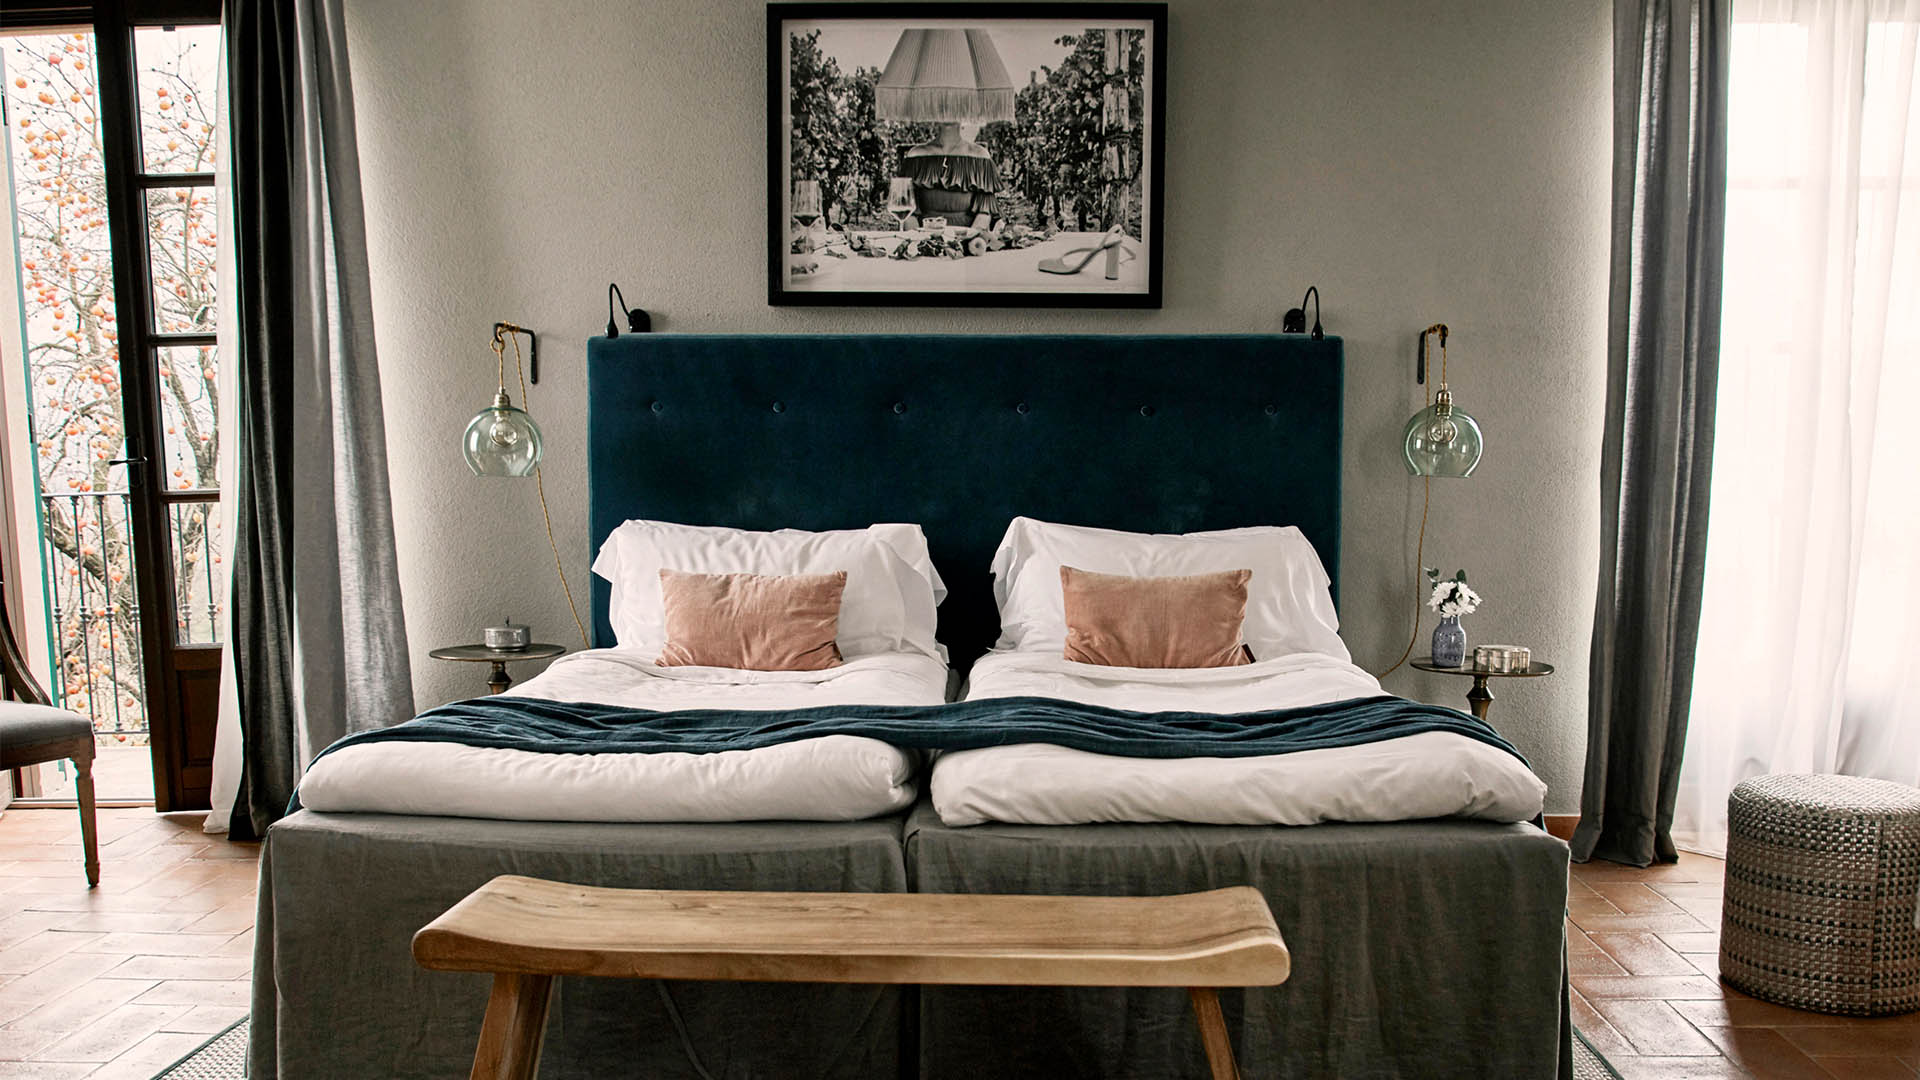 6 of europe's most beautiful bedrooms  small luxury hotels